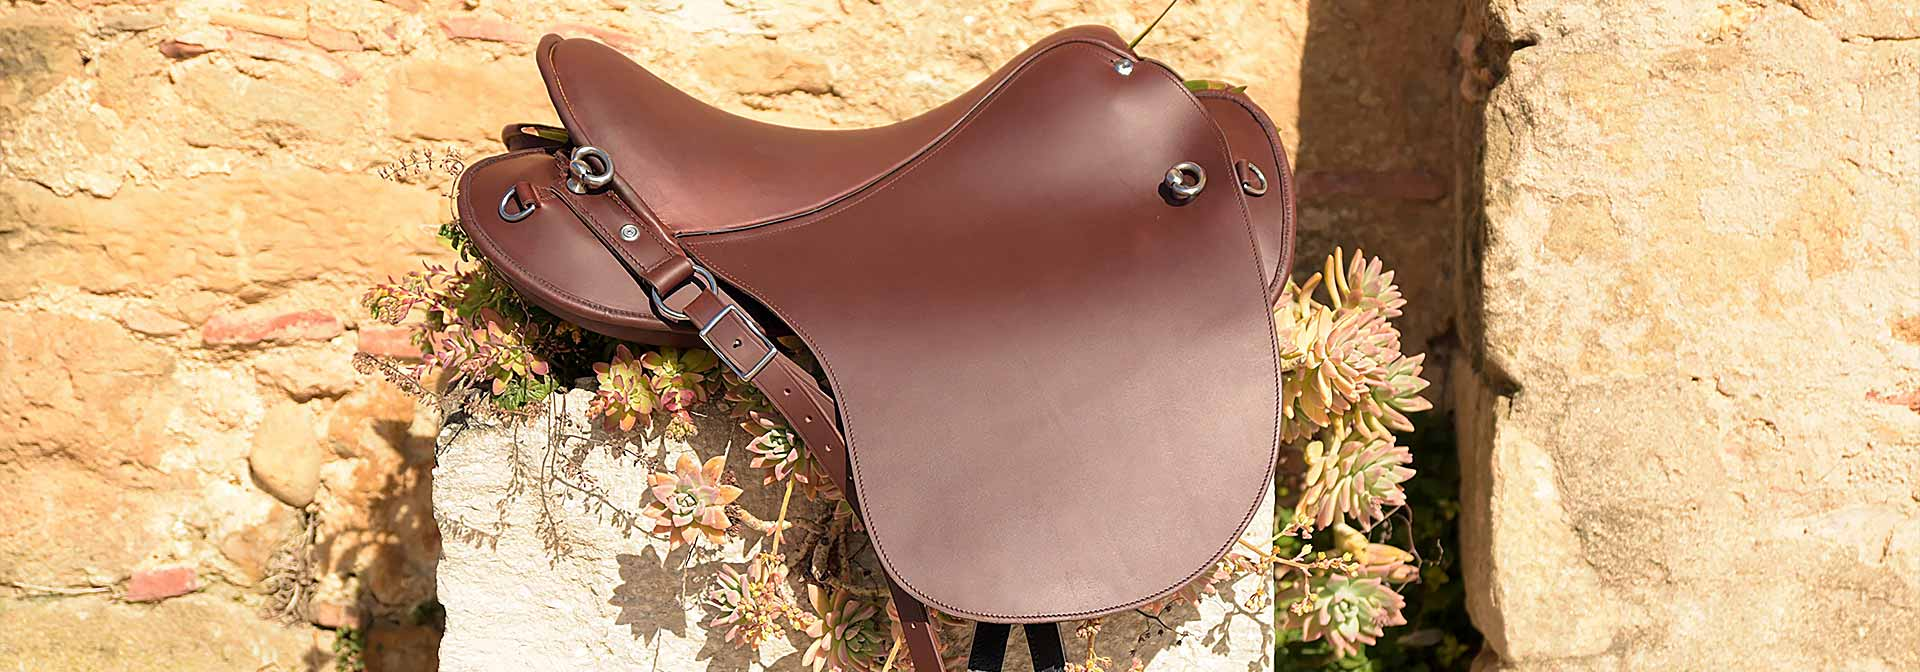 Top saddle Spain Germany